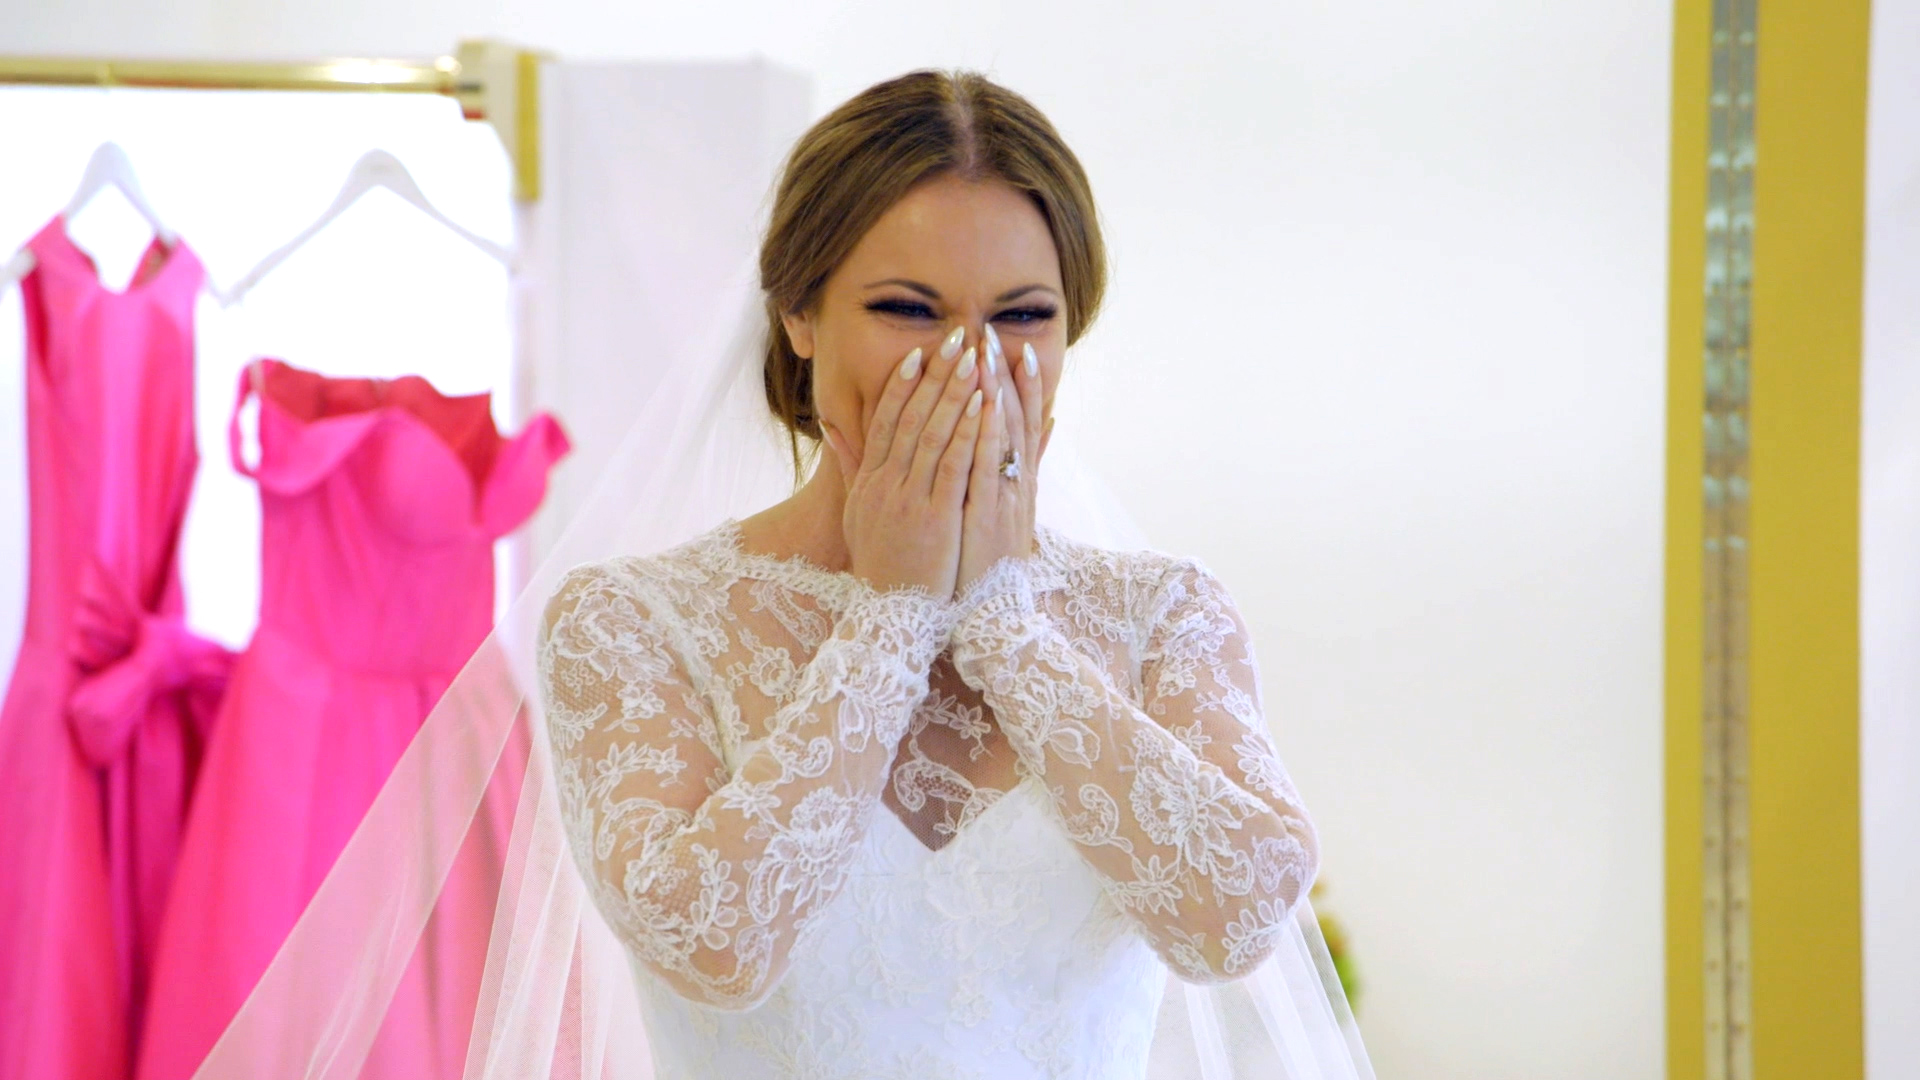 Next on RHOD: Here Comes the Bride